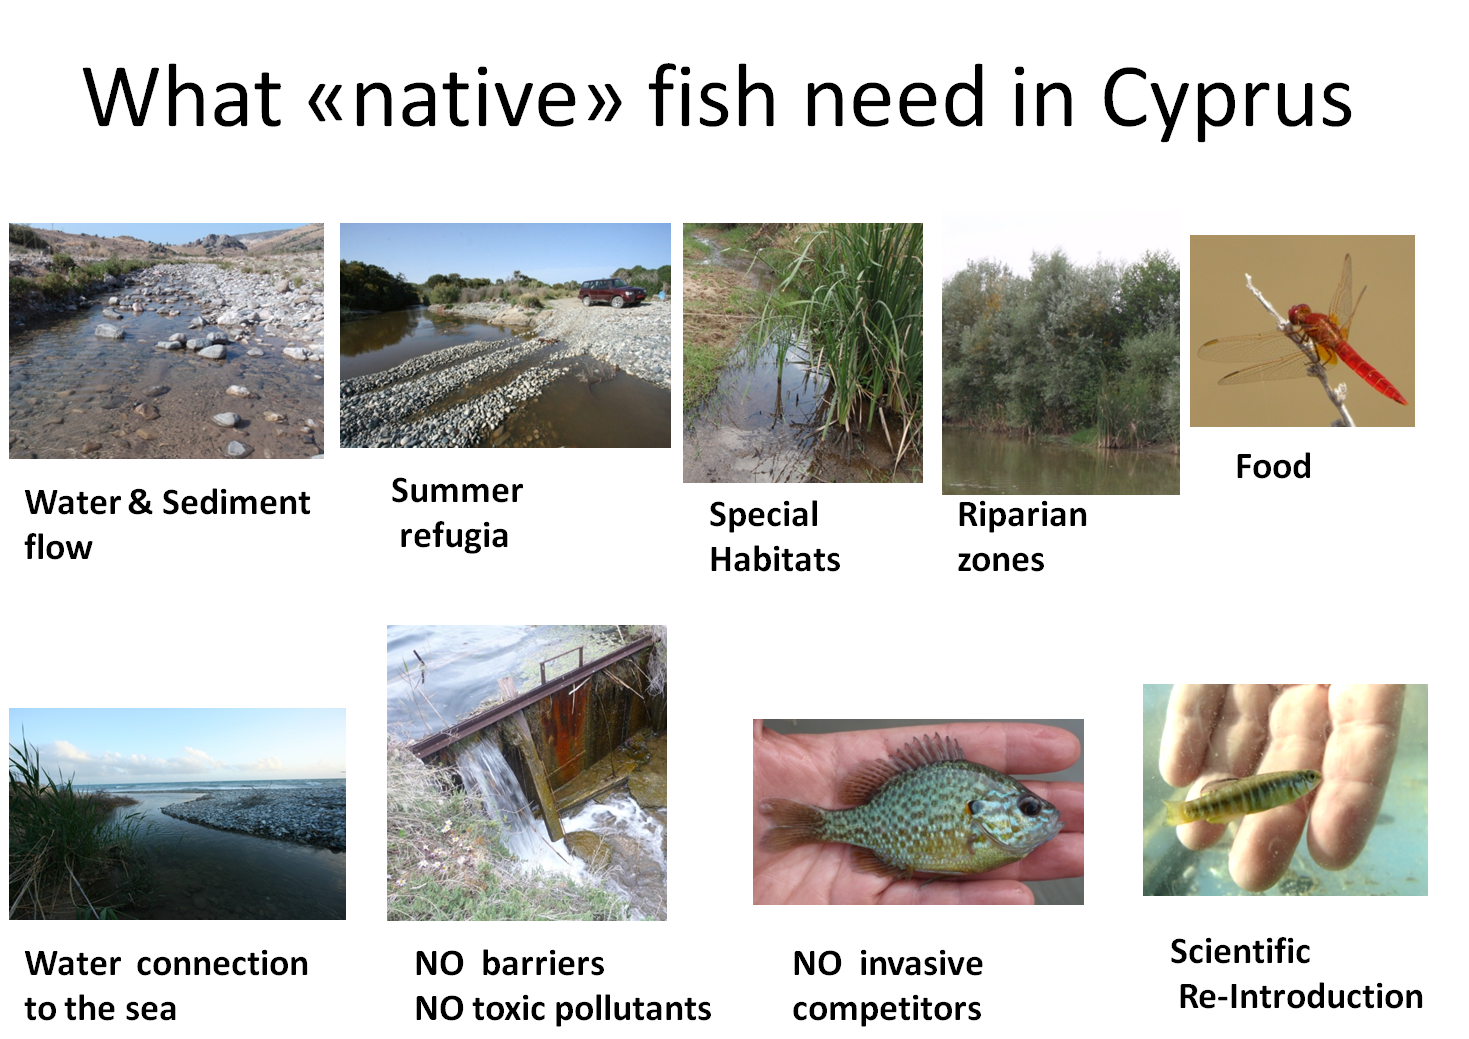 Freshwater fish conservation - After Working In The Field In Cyprus For Freshwater Fish Research Since 2009 My Colleagues And I Feel It Is Time To Do More Writing